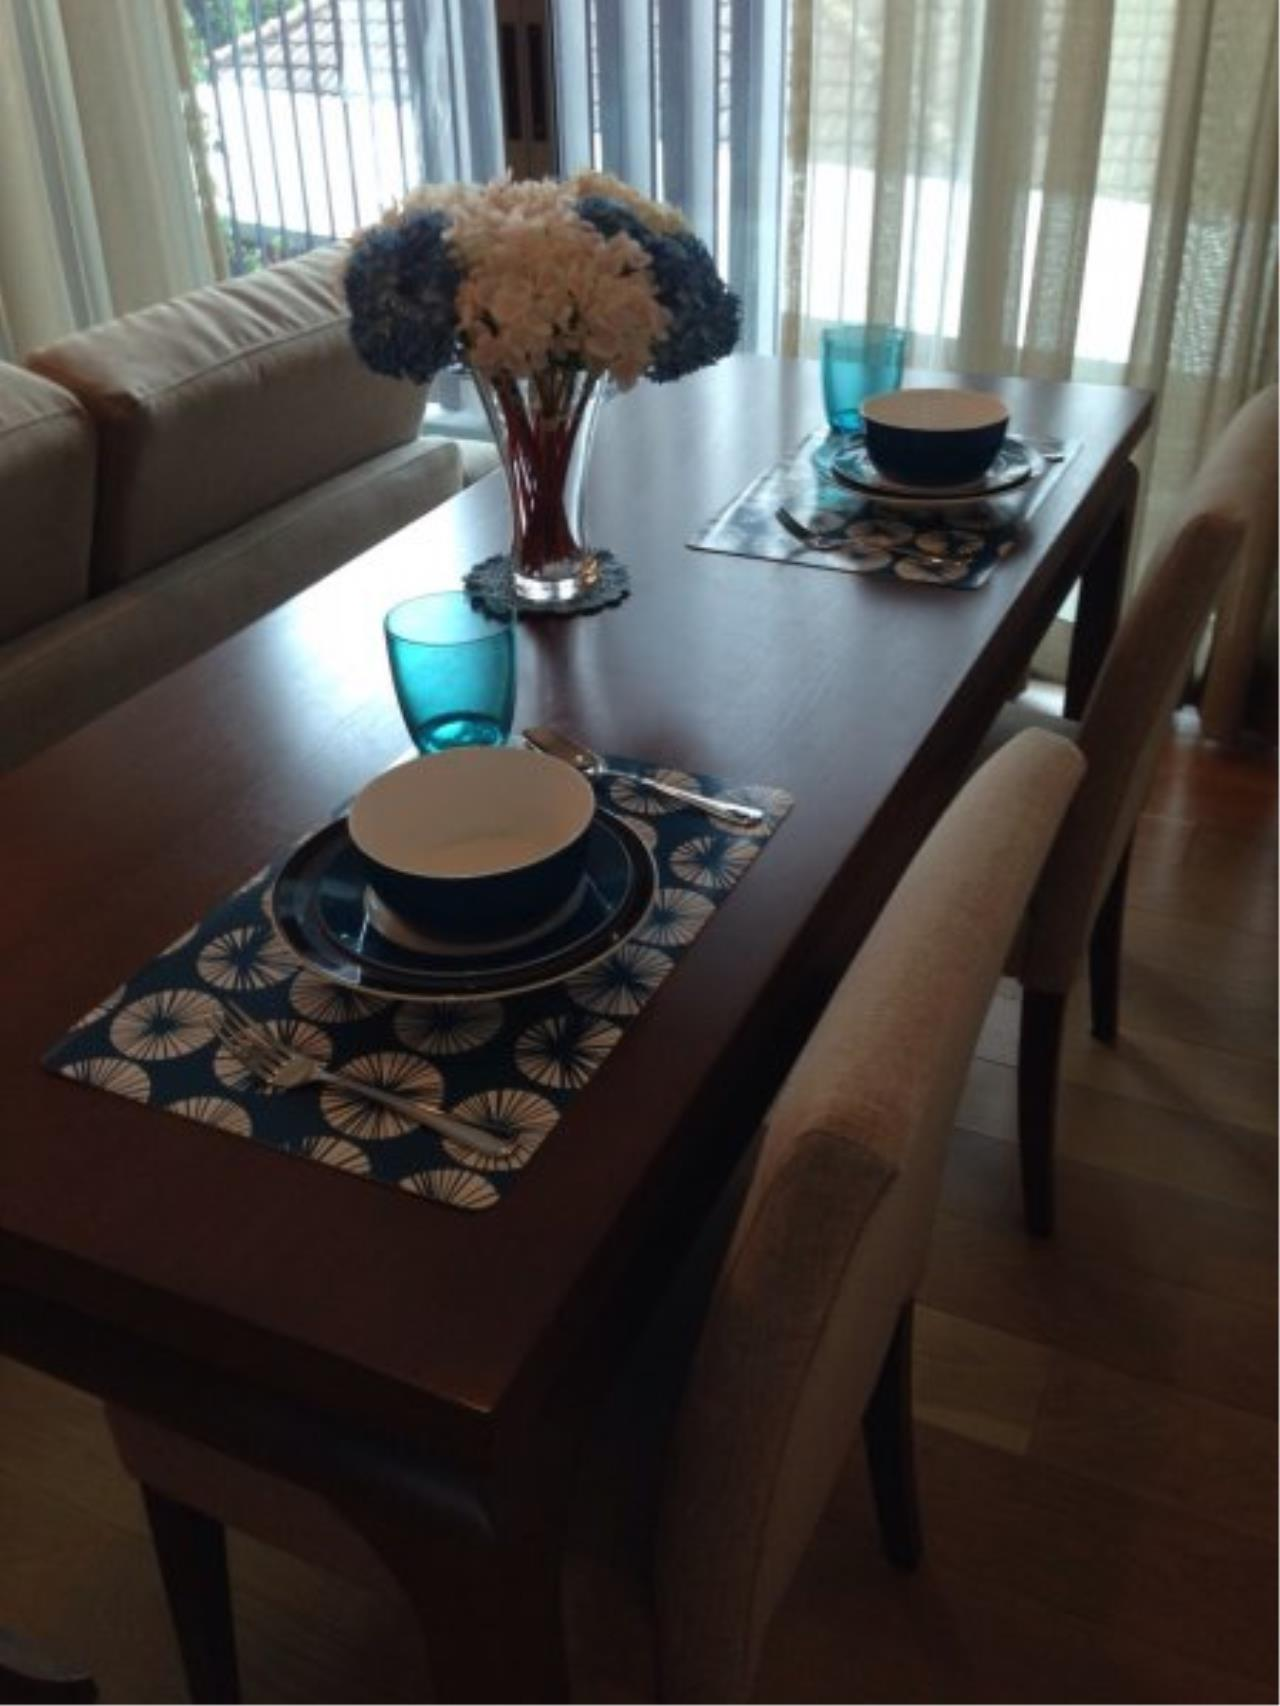 Piri Property Agency's Cozy 1 Bedroom in the Siamese 39 Building for rent 4